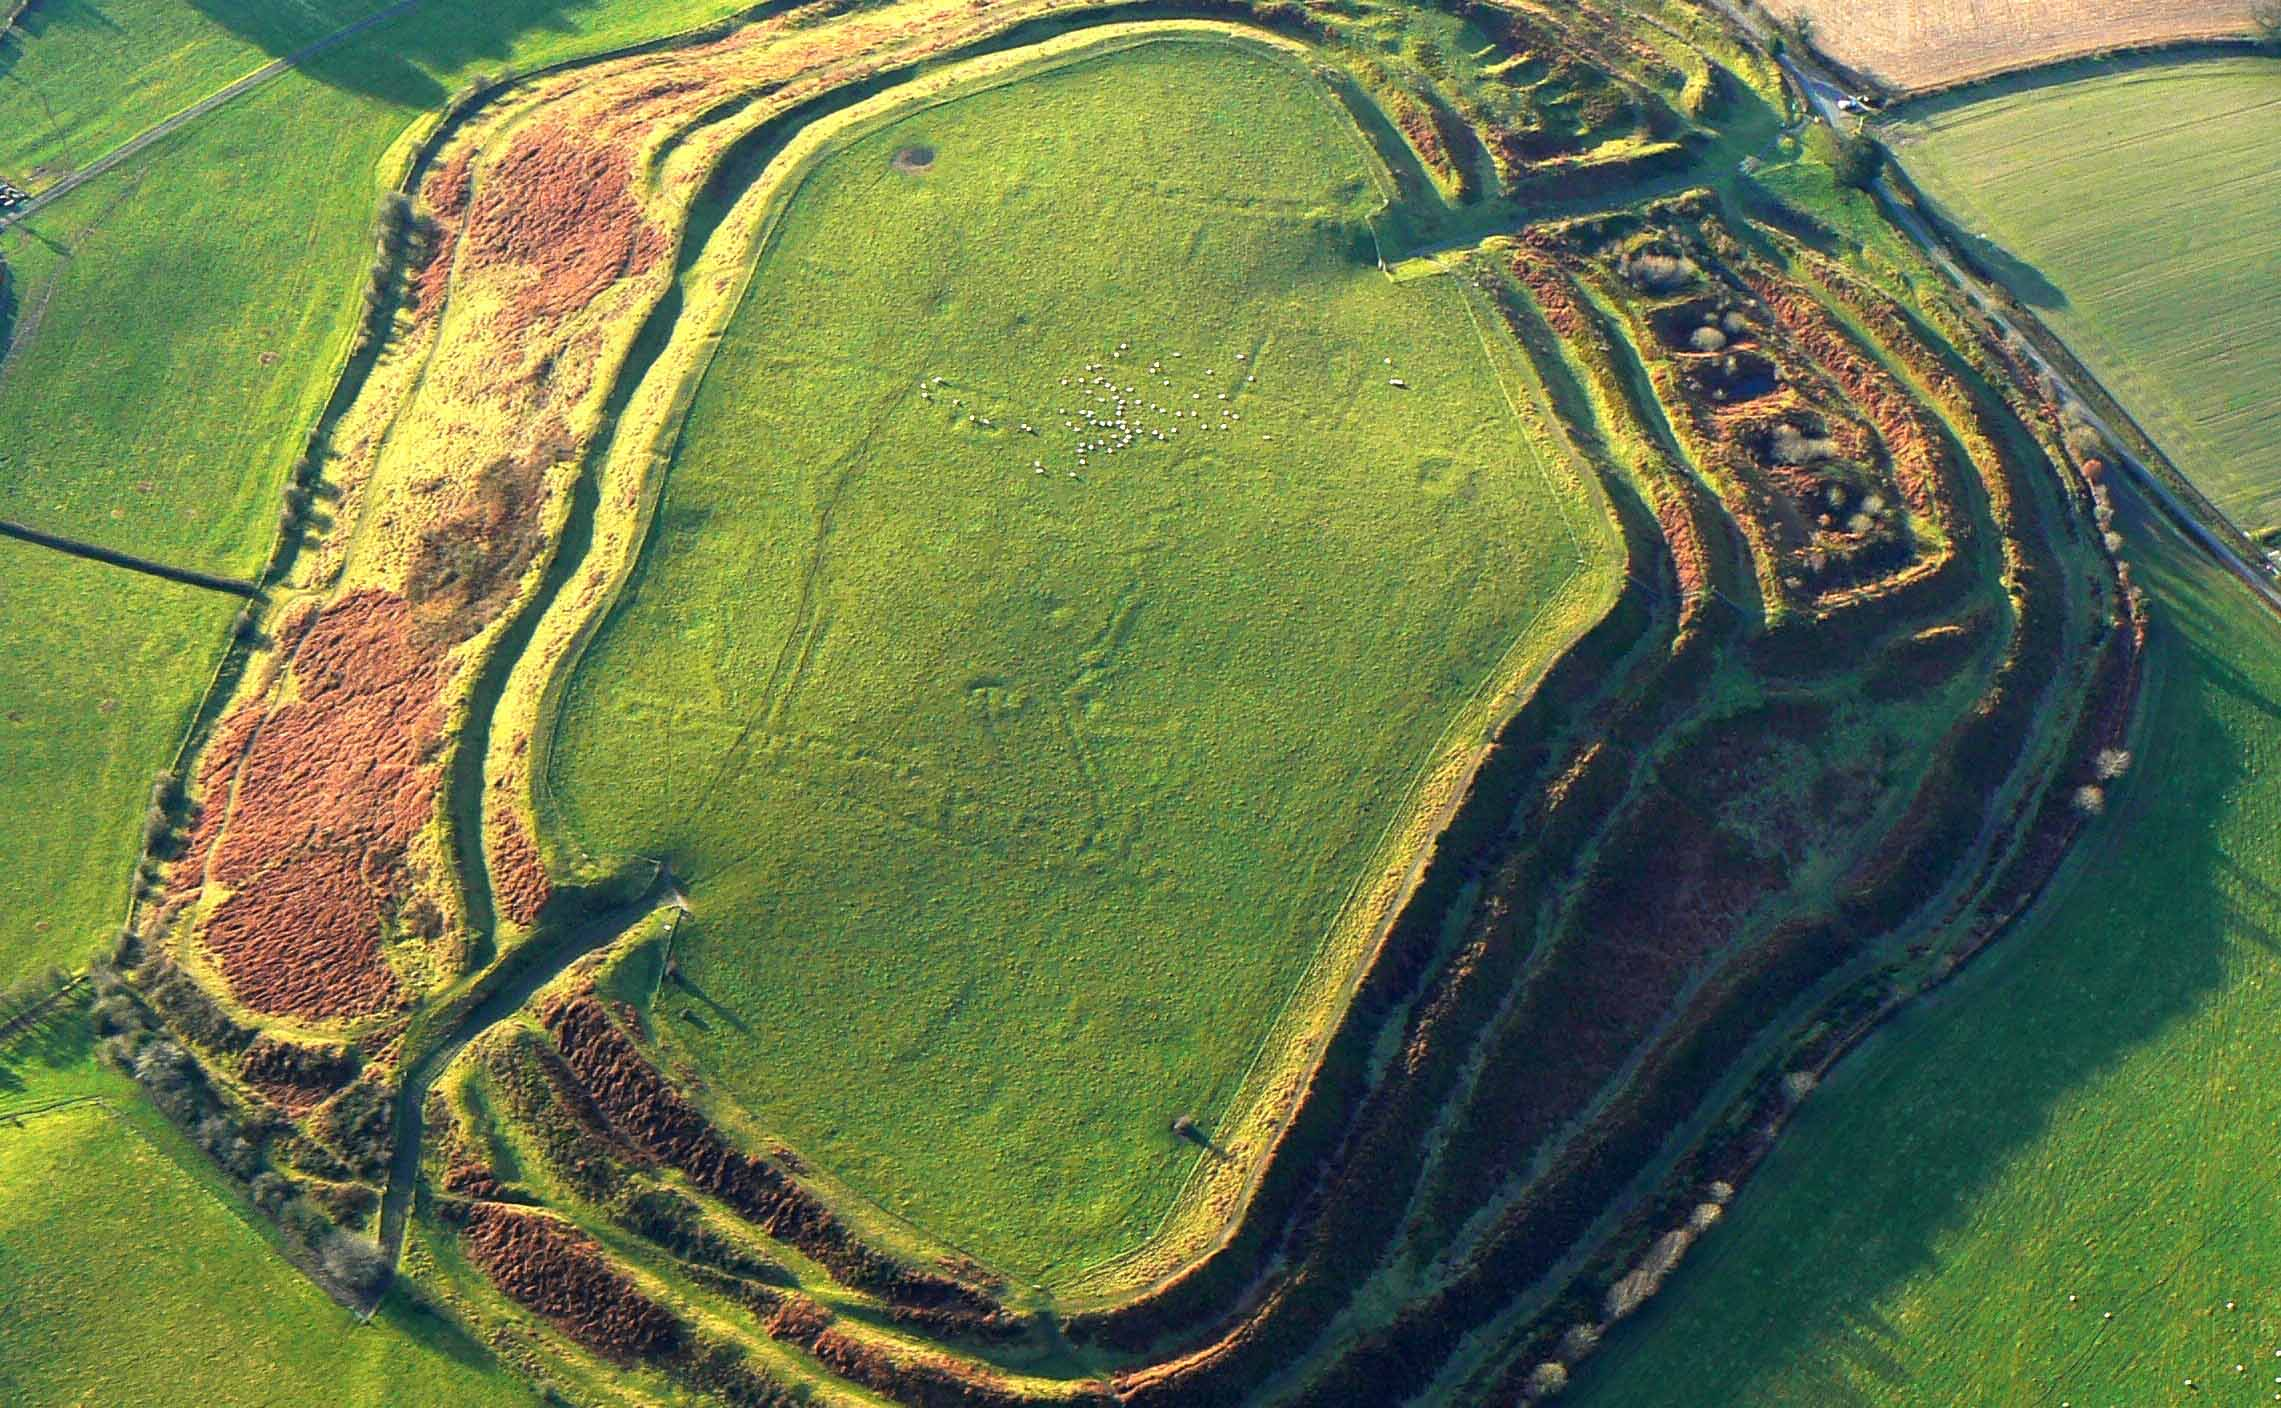 Talk:Hillfort - Wikipedia